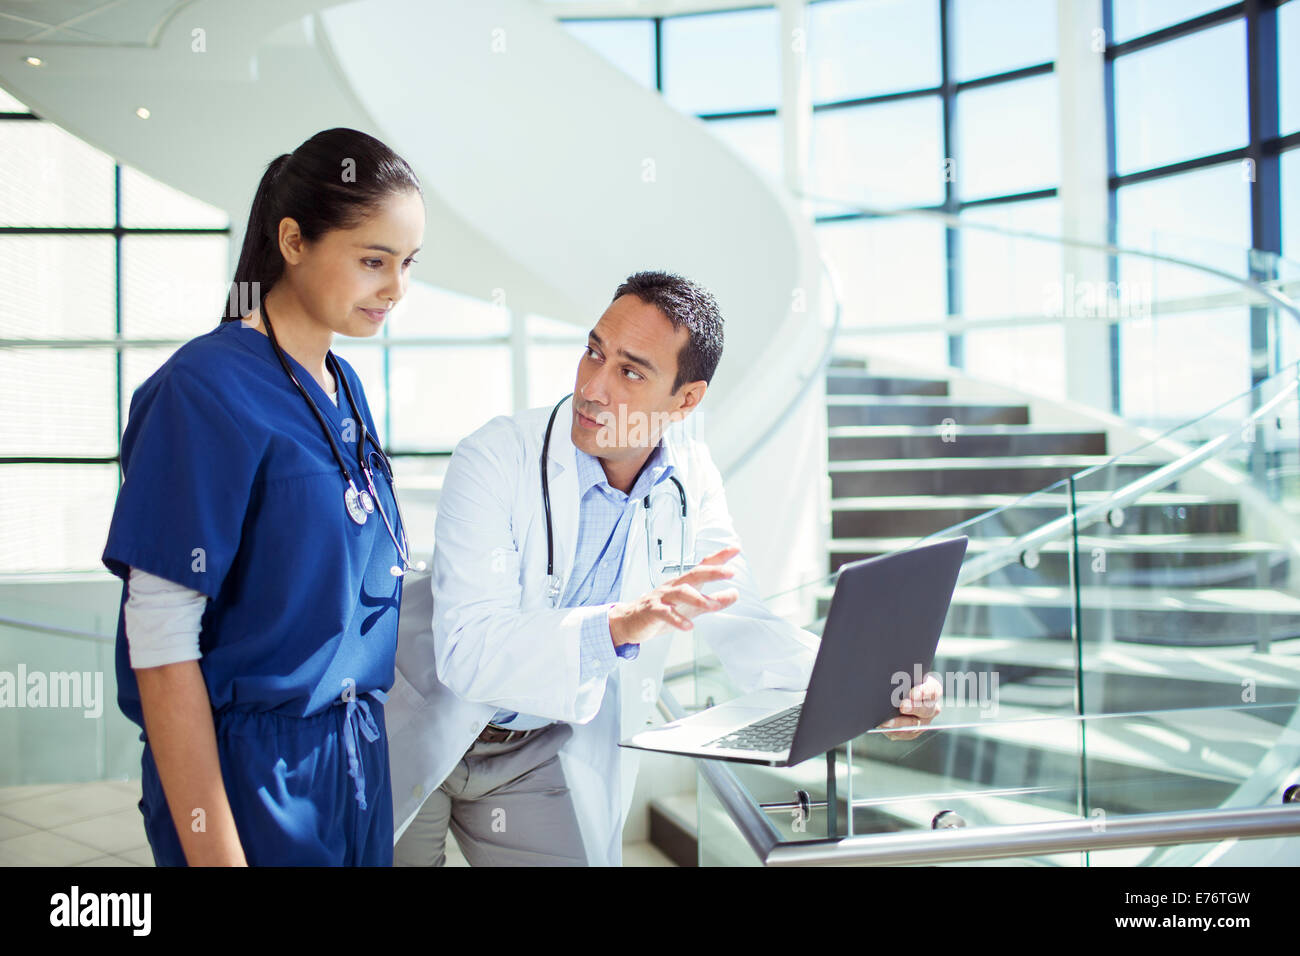 Doctor and nurse using laptop in hospital - Stock Image